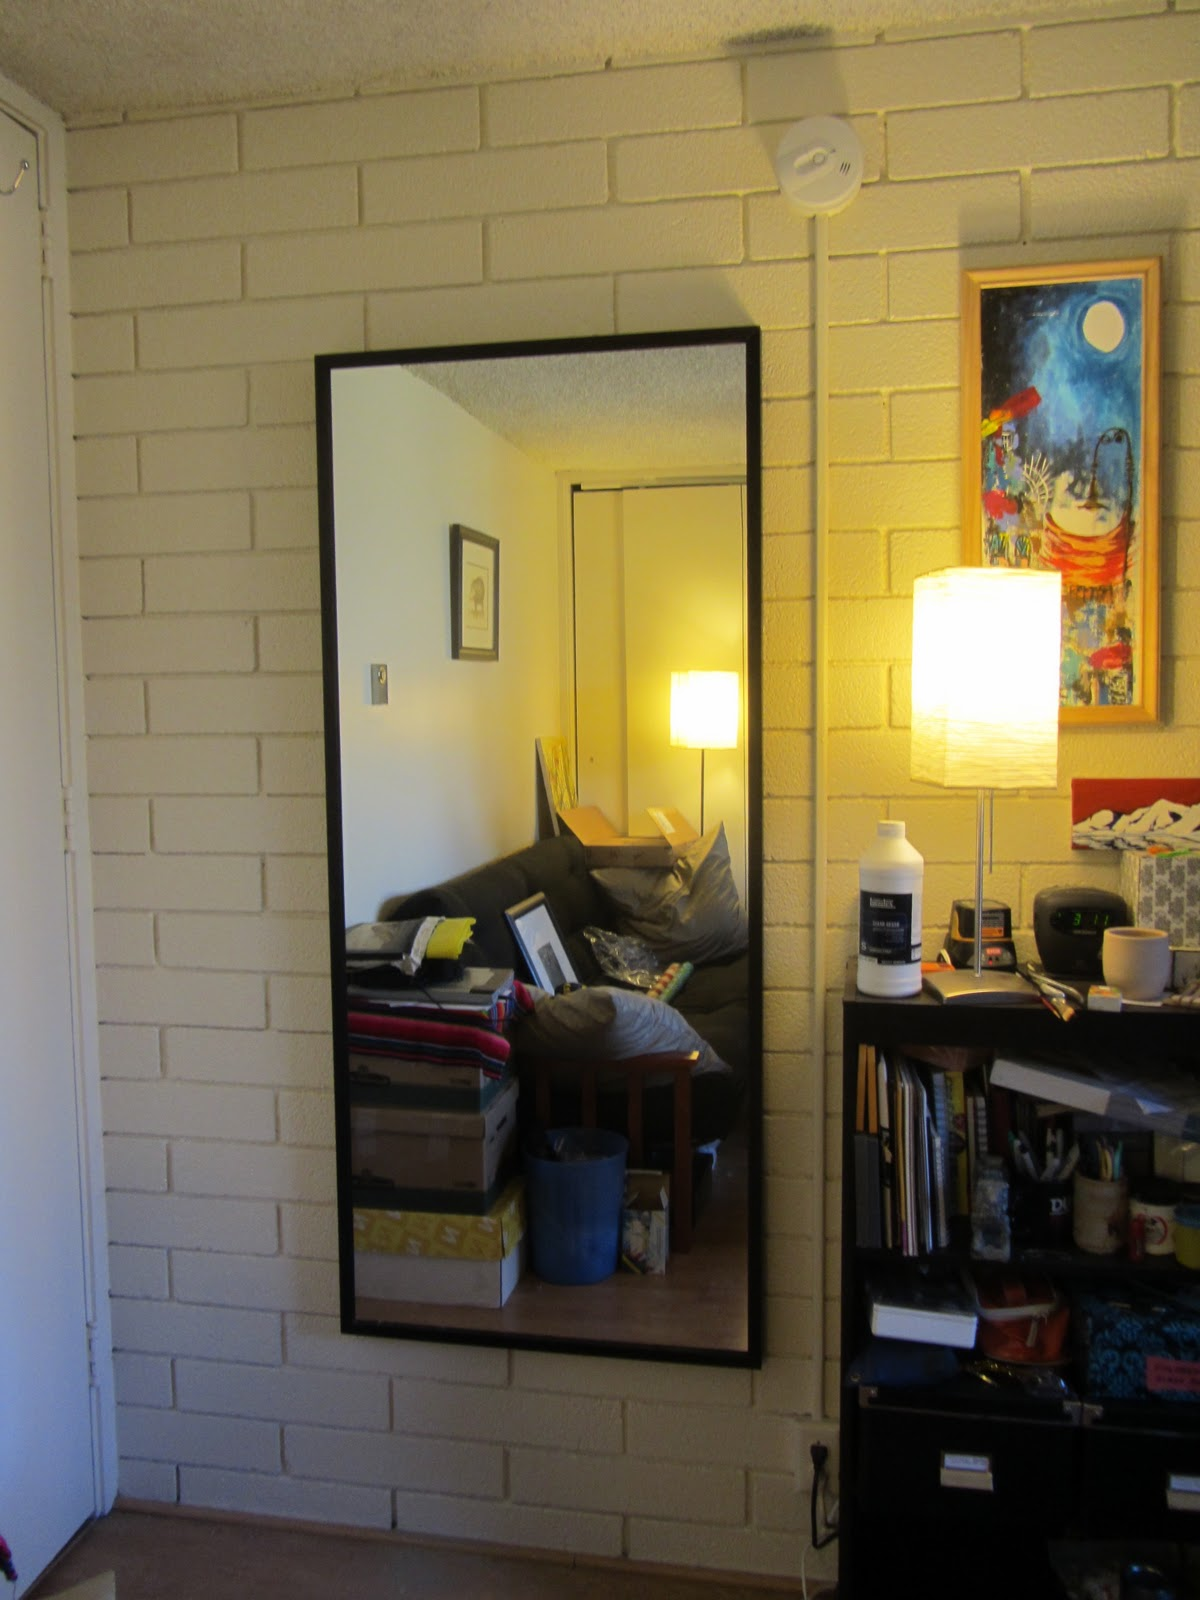 Mike is Bored: How to hang a picture on a brick or concrete wall